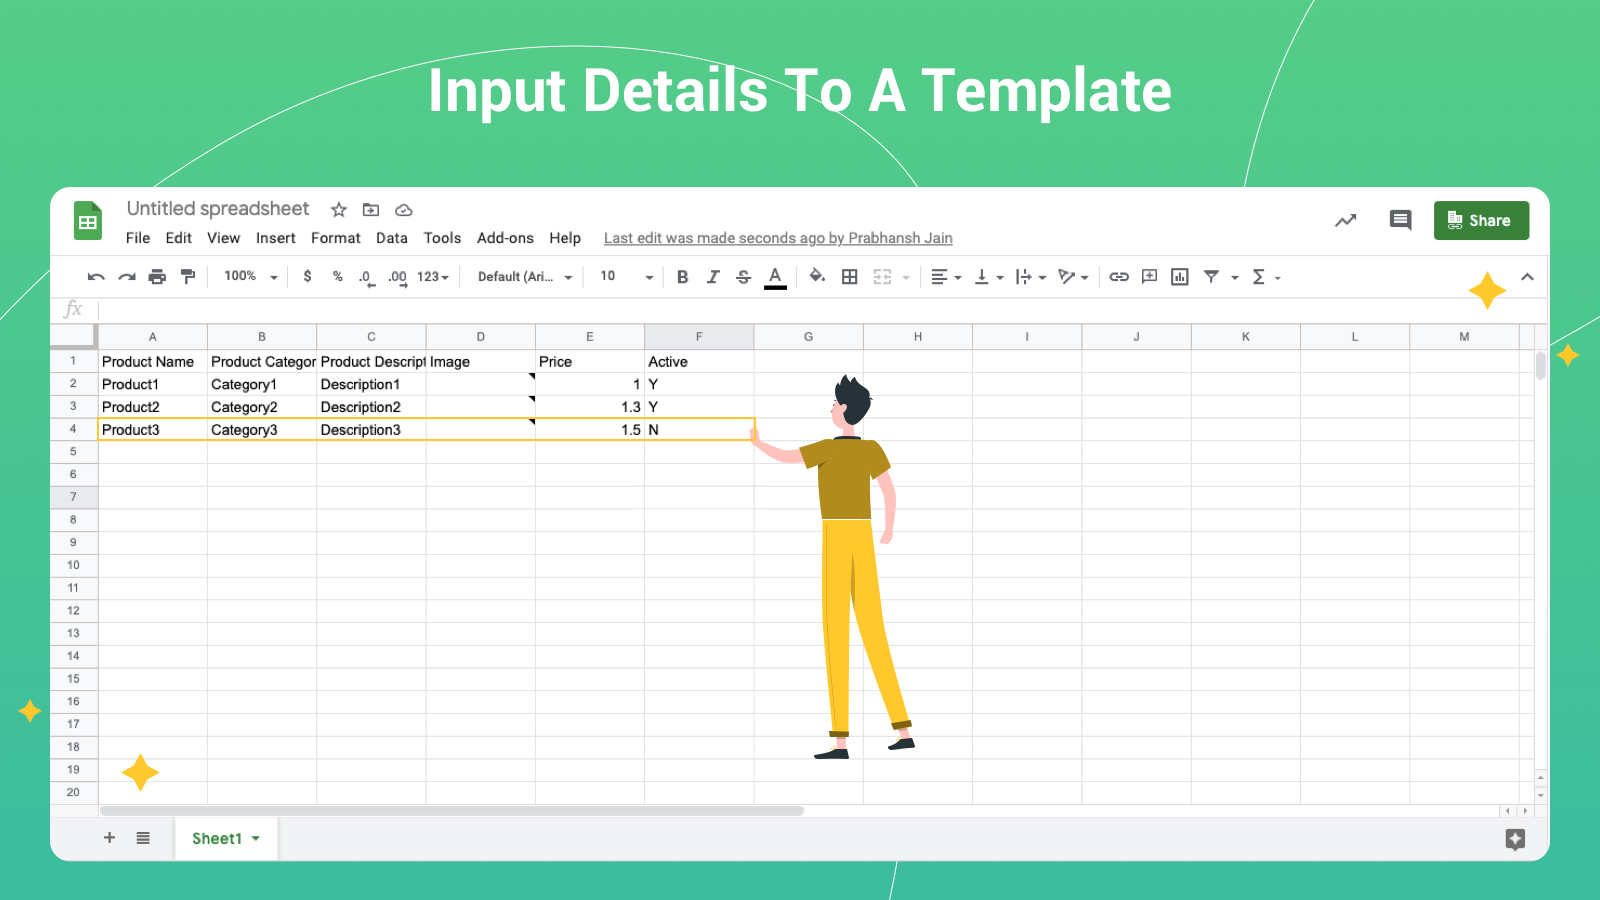 Input Details To A Template